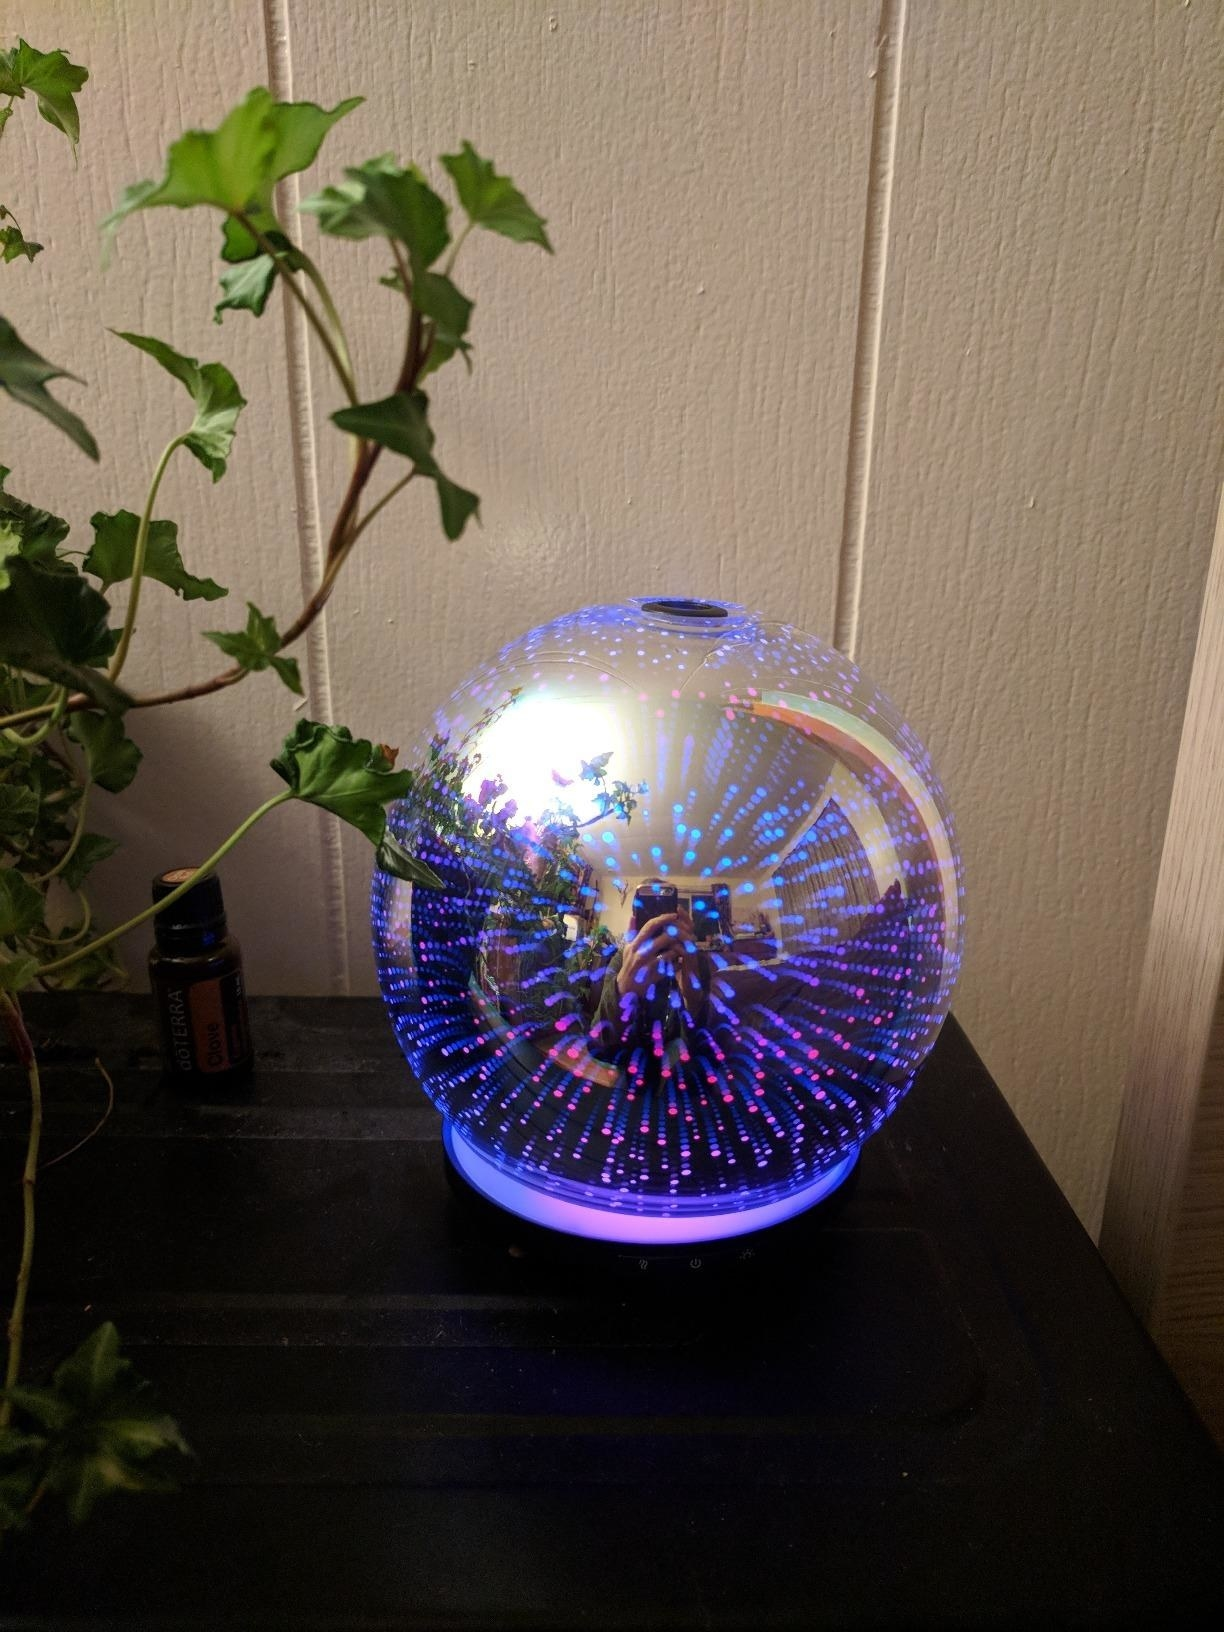 Purple, red. and blue LED galaxy-inspired diffuser on tabletop